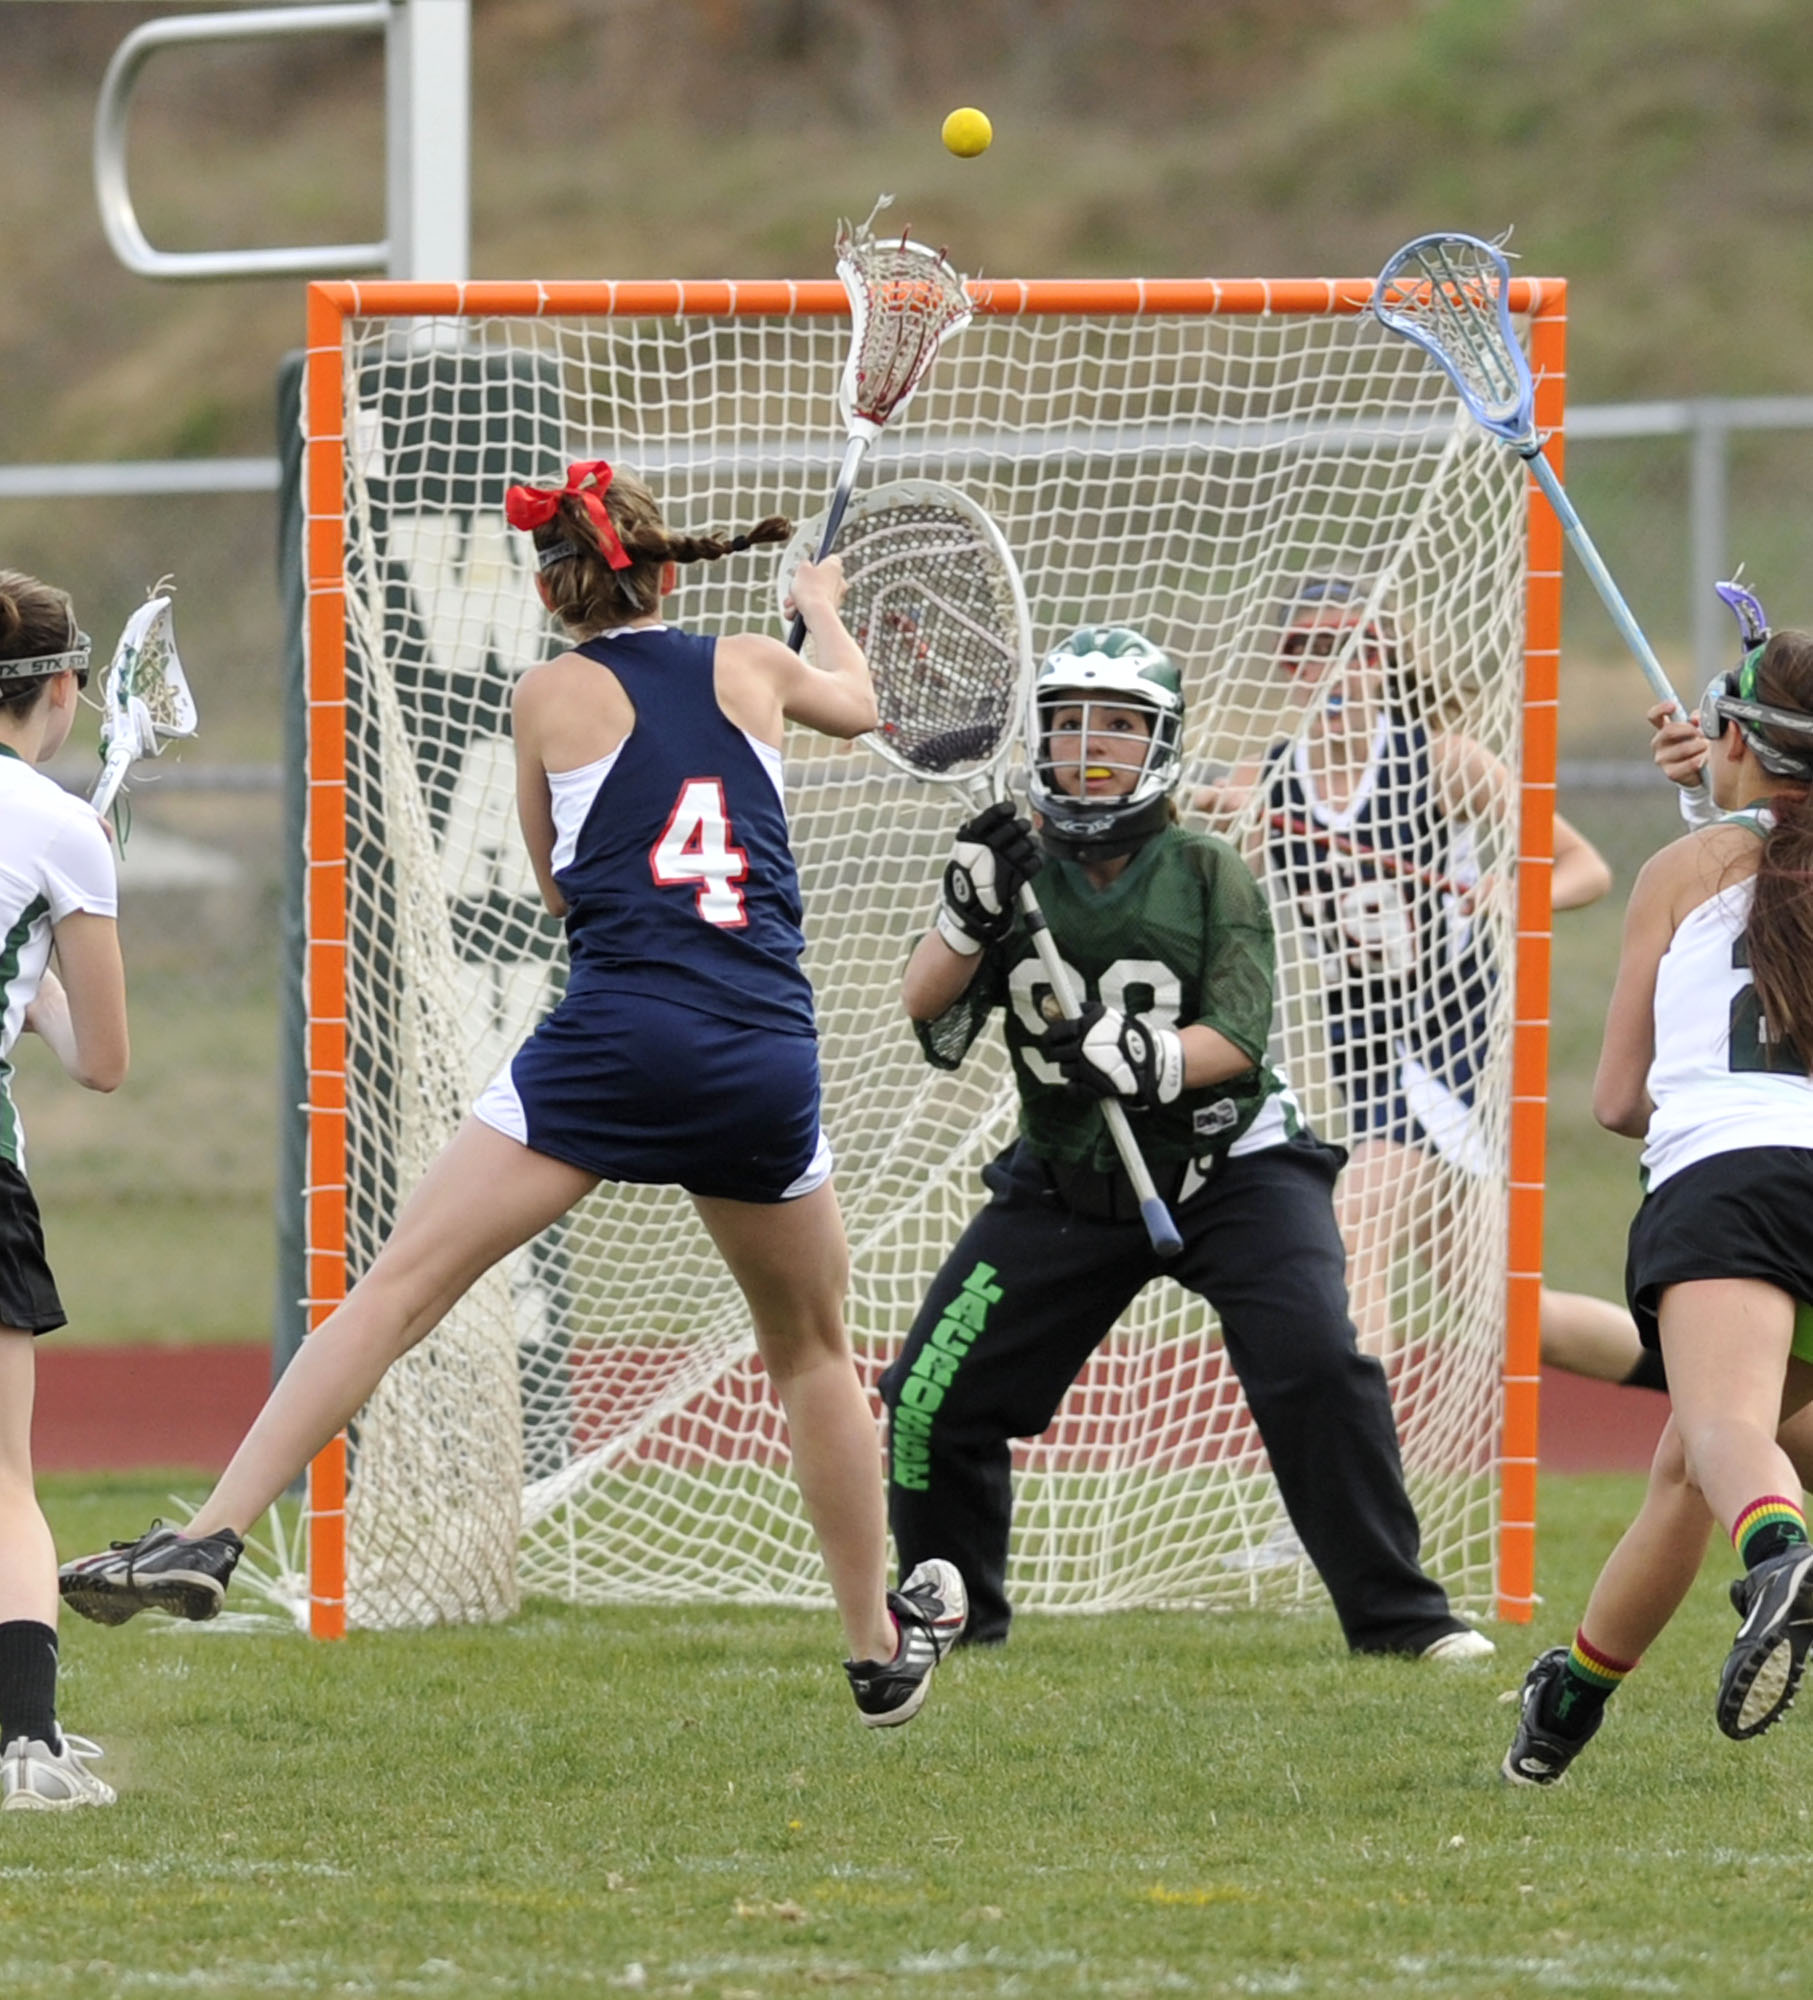 Ridgefield Central Lacrosse Pictures 43